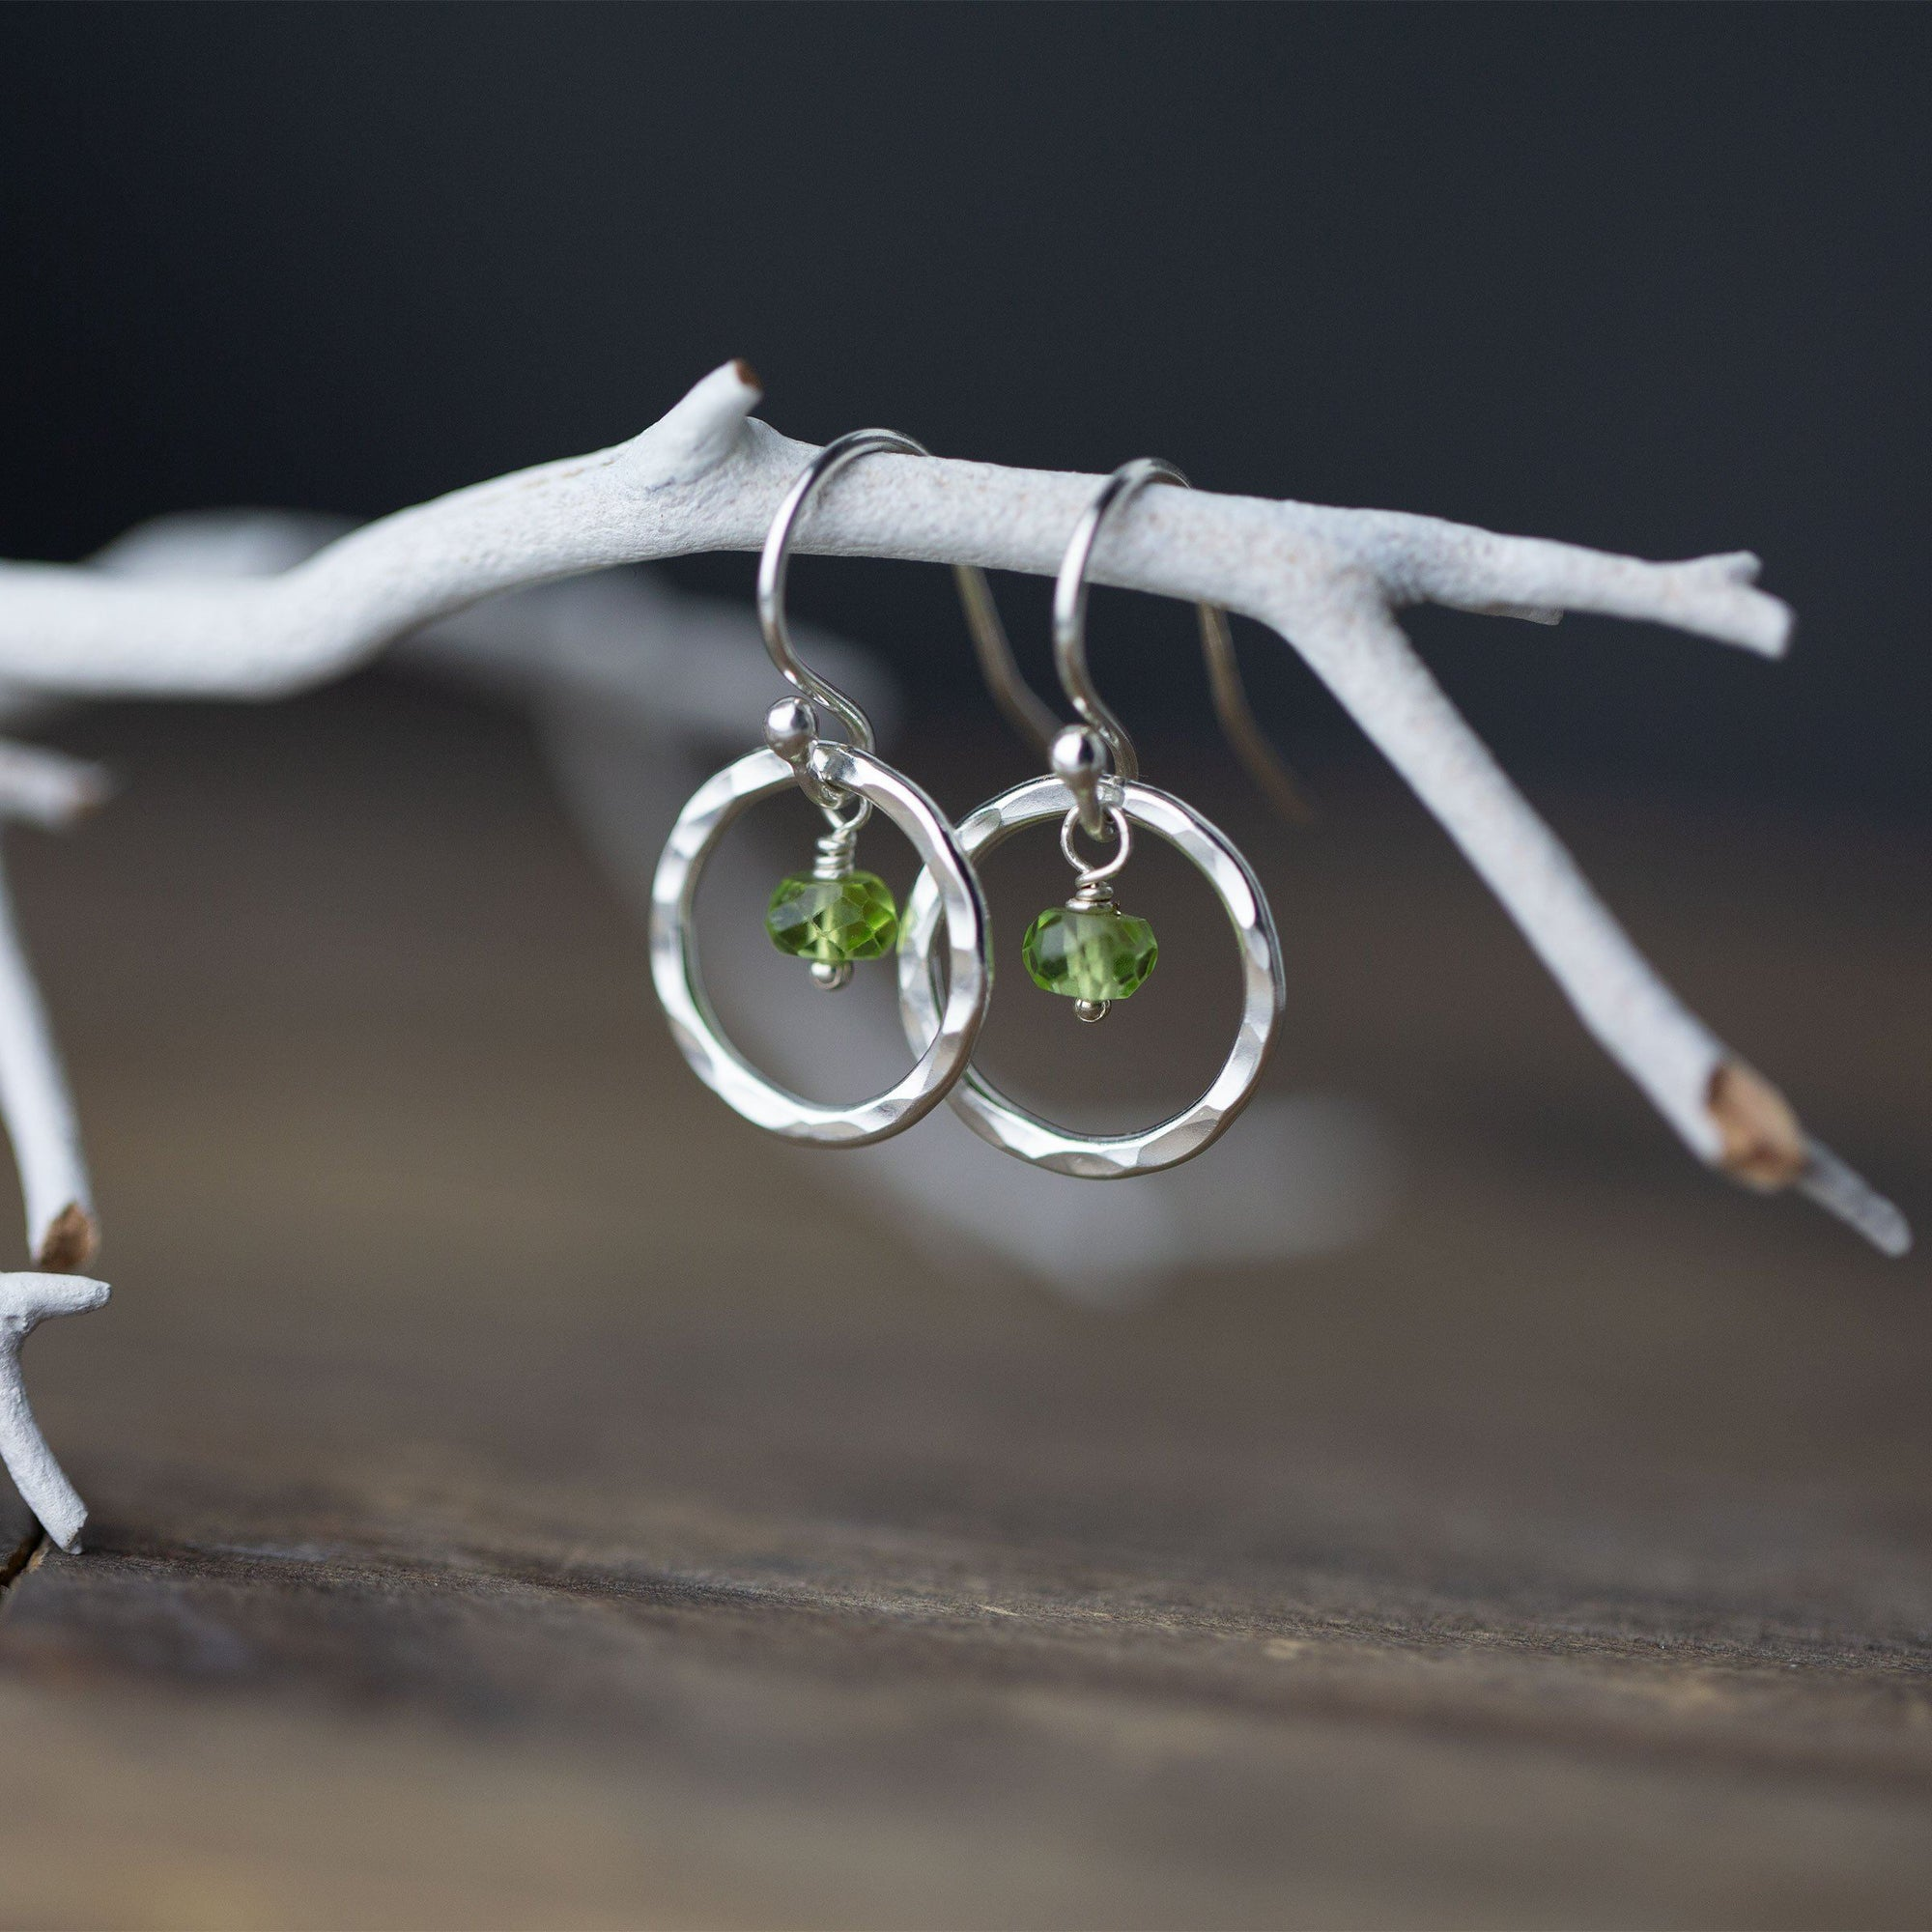 Peridot Hammered Silver Circle Earrings - Handmade Jewelry by Burnish